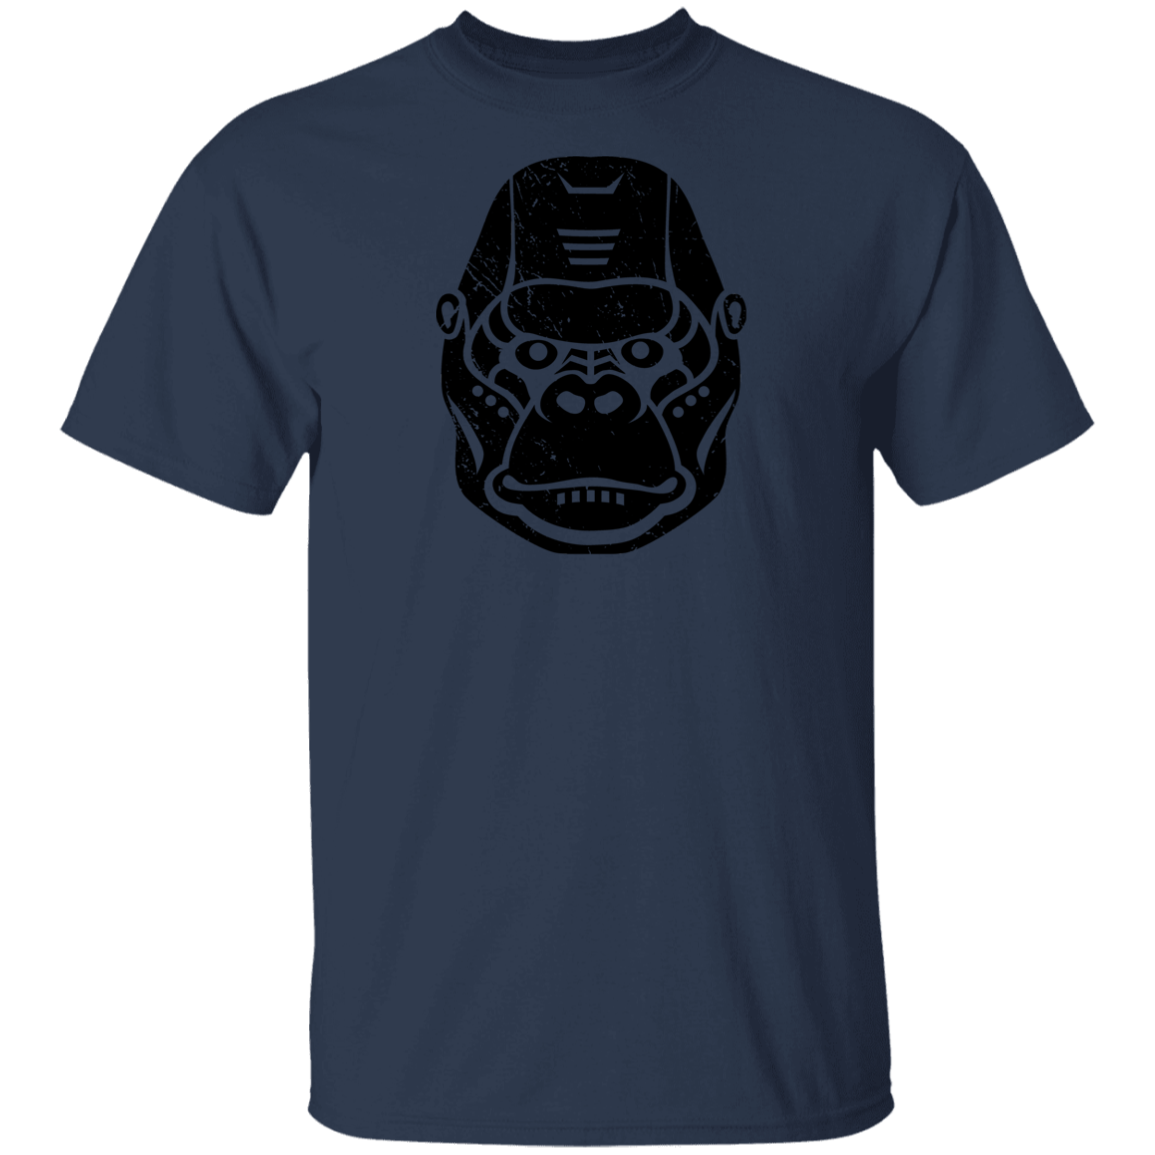 Black Distressed Emblem T-Shirt for Kids (Gorilla/Knuckles)